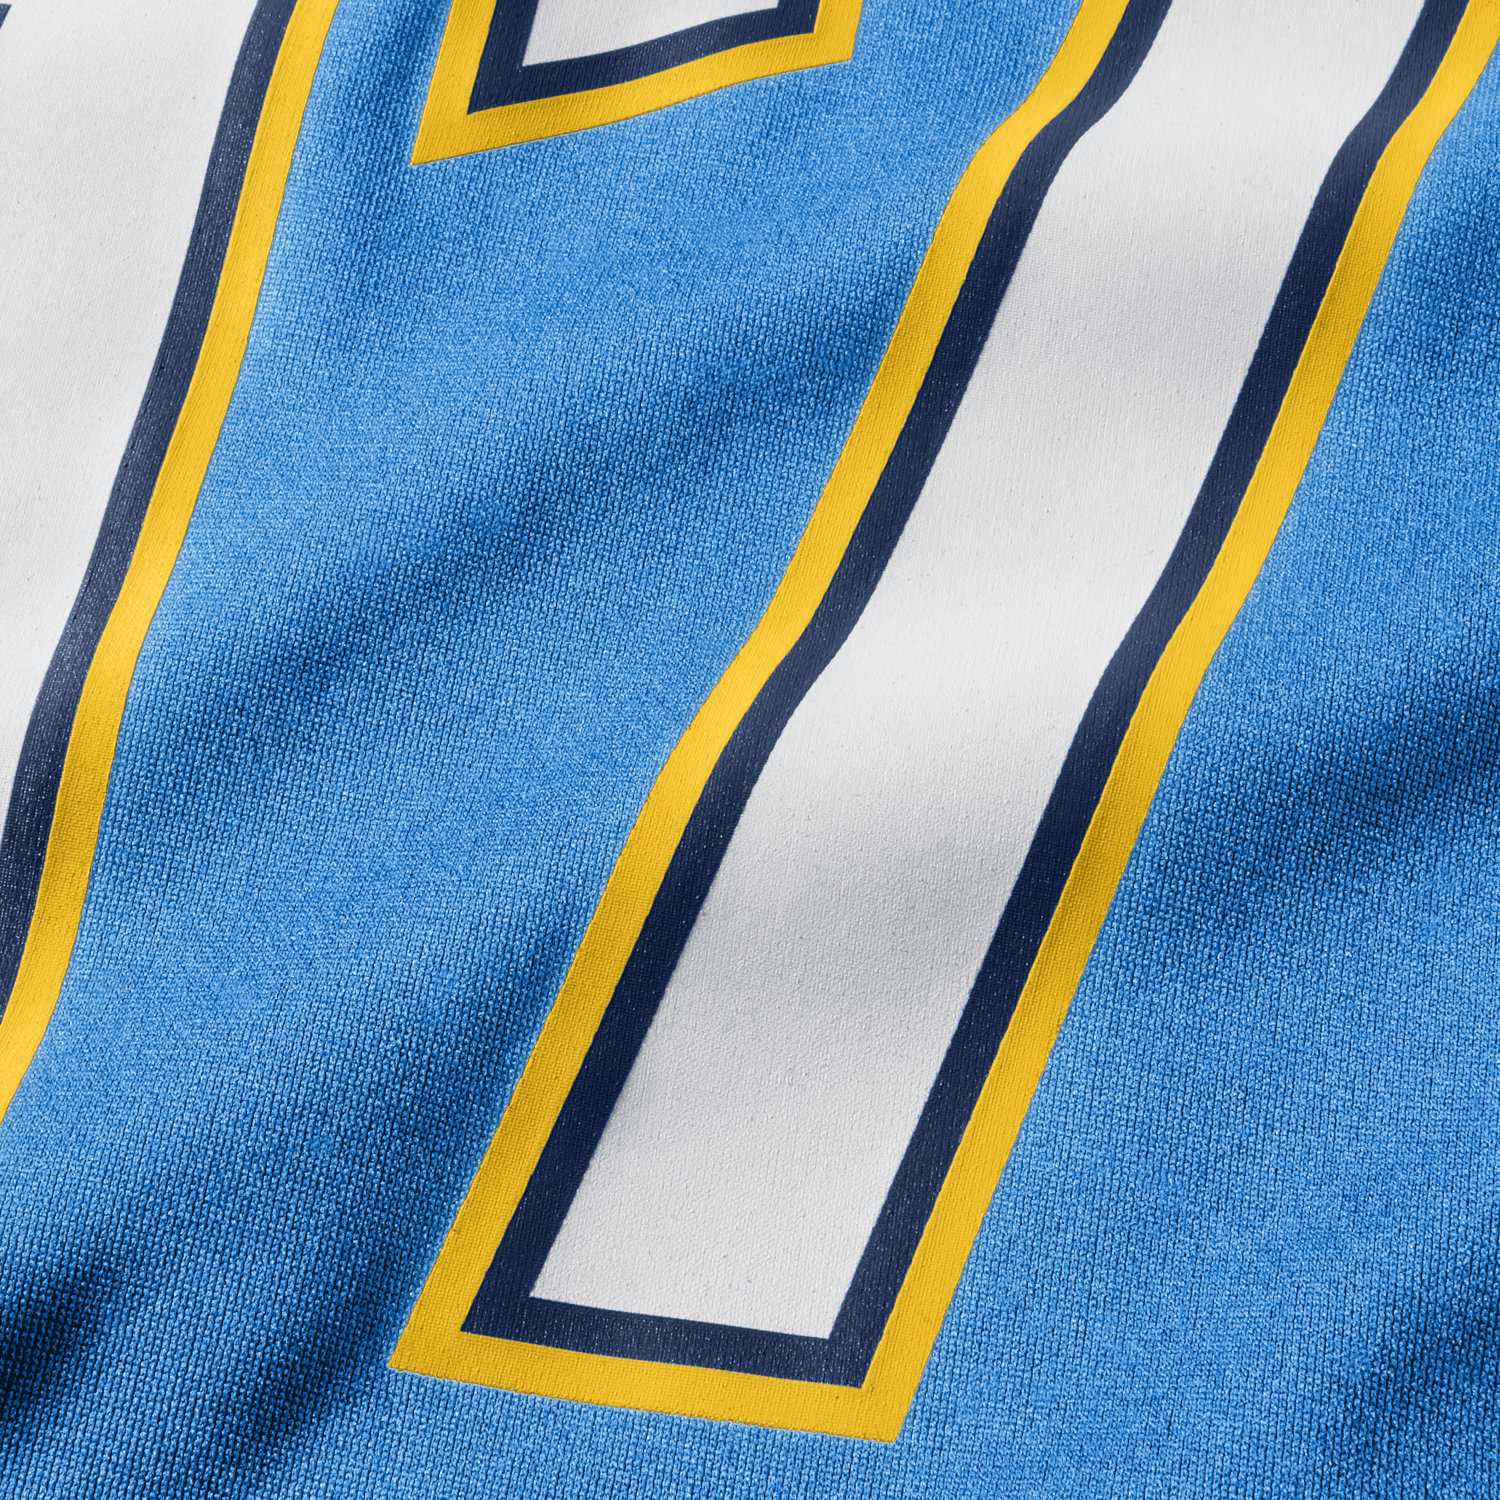 184010a5b ... NFL Los Angeles Chargers (Antonio Gates) Mens Football Alternate Game  Jersey. Nike. Los Angeles Chargers Antonio Gates 85 Nike Elite Electric Blue  ...